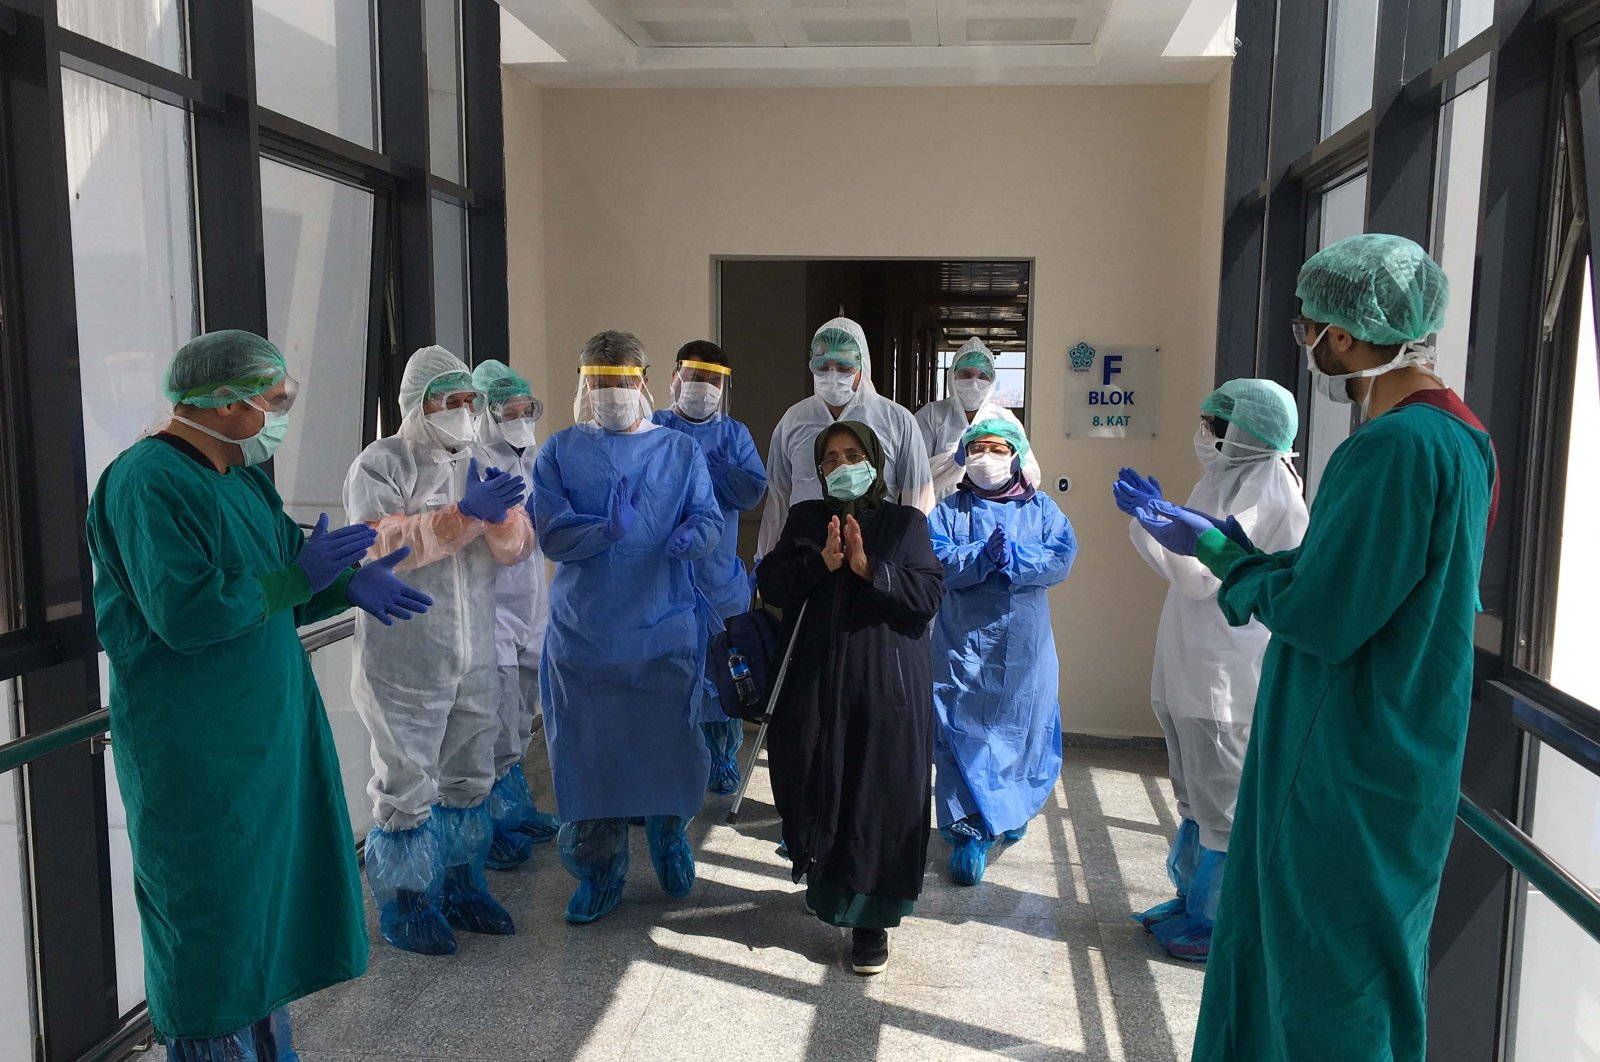 A recovered COVID-19 patient leaves a hospital amid applause from the staff in Konya, Turkey, April 11, 2020. (DHA Photo)